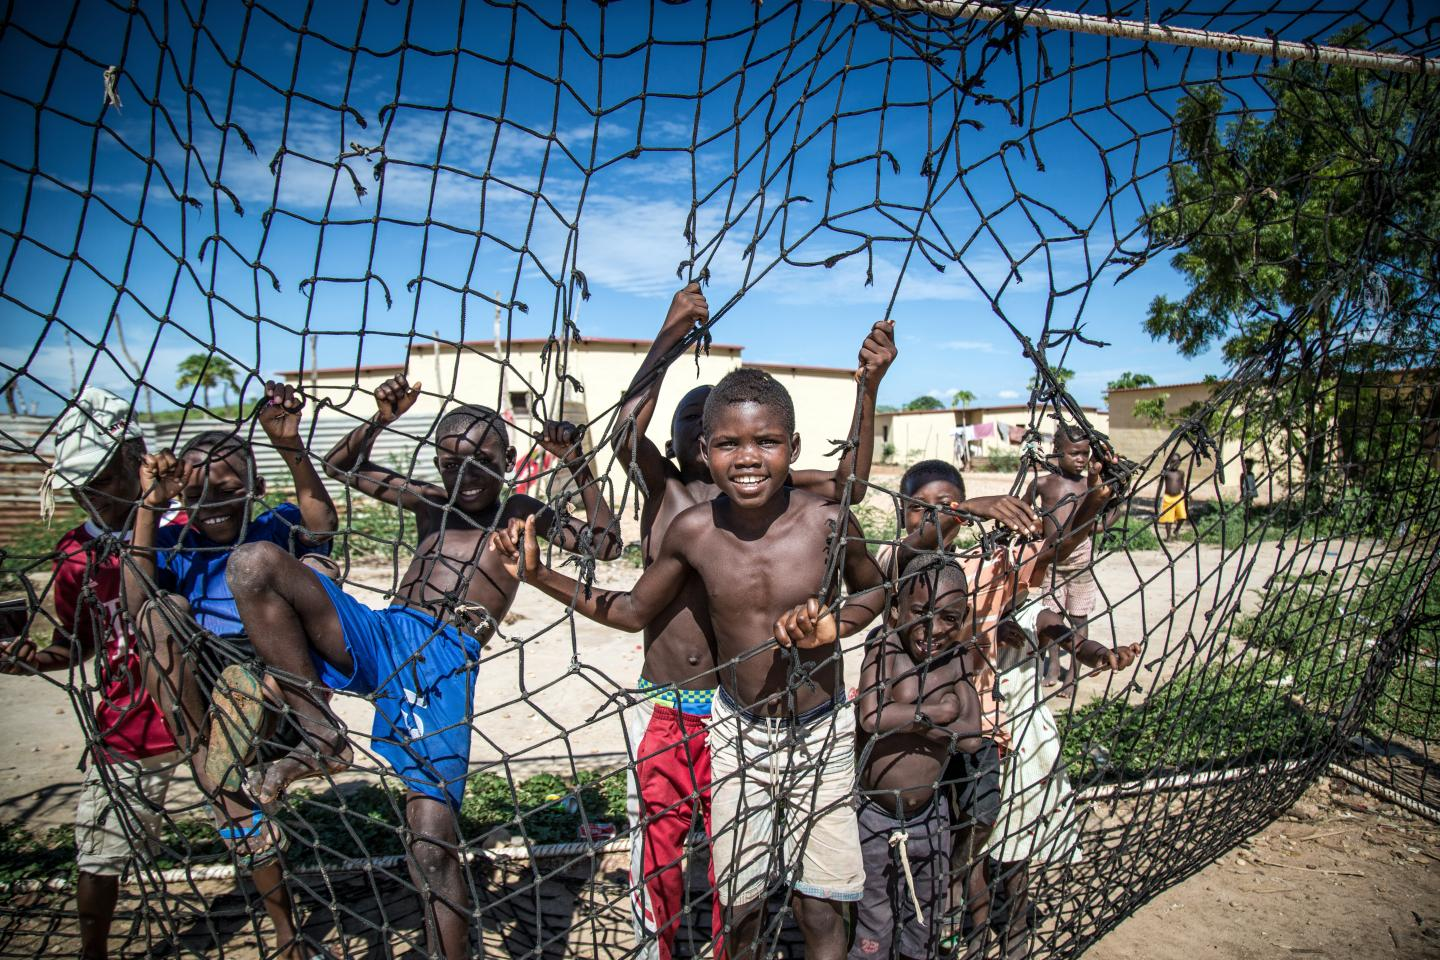 Boys play soccer in Angola